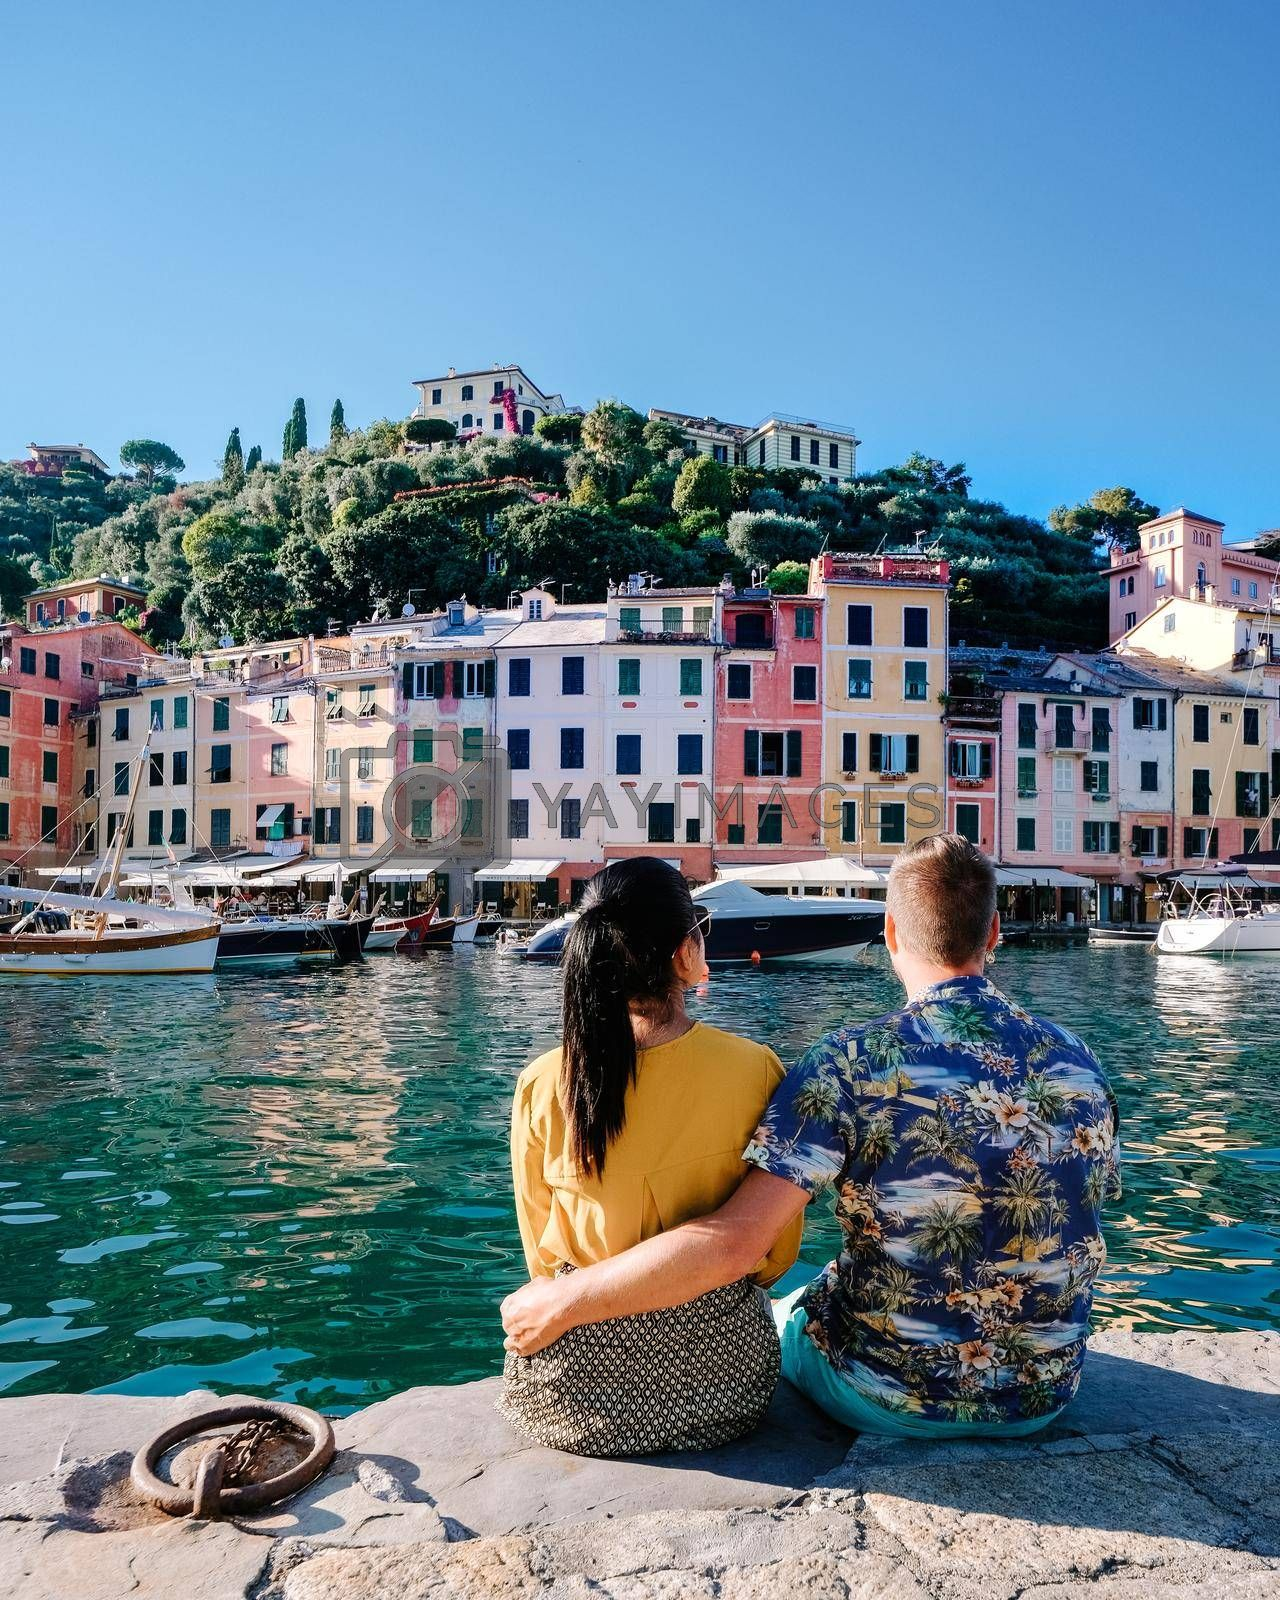 Portofino Liguria Italy, Beautiful bay with colorful houses in Portofino, Liguria, Italy.Europe, couple men and woman on vacation in Italy